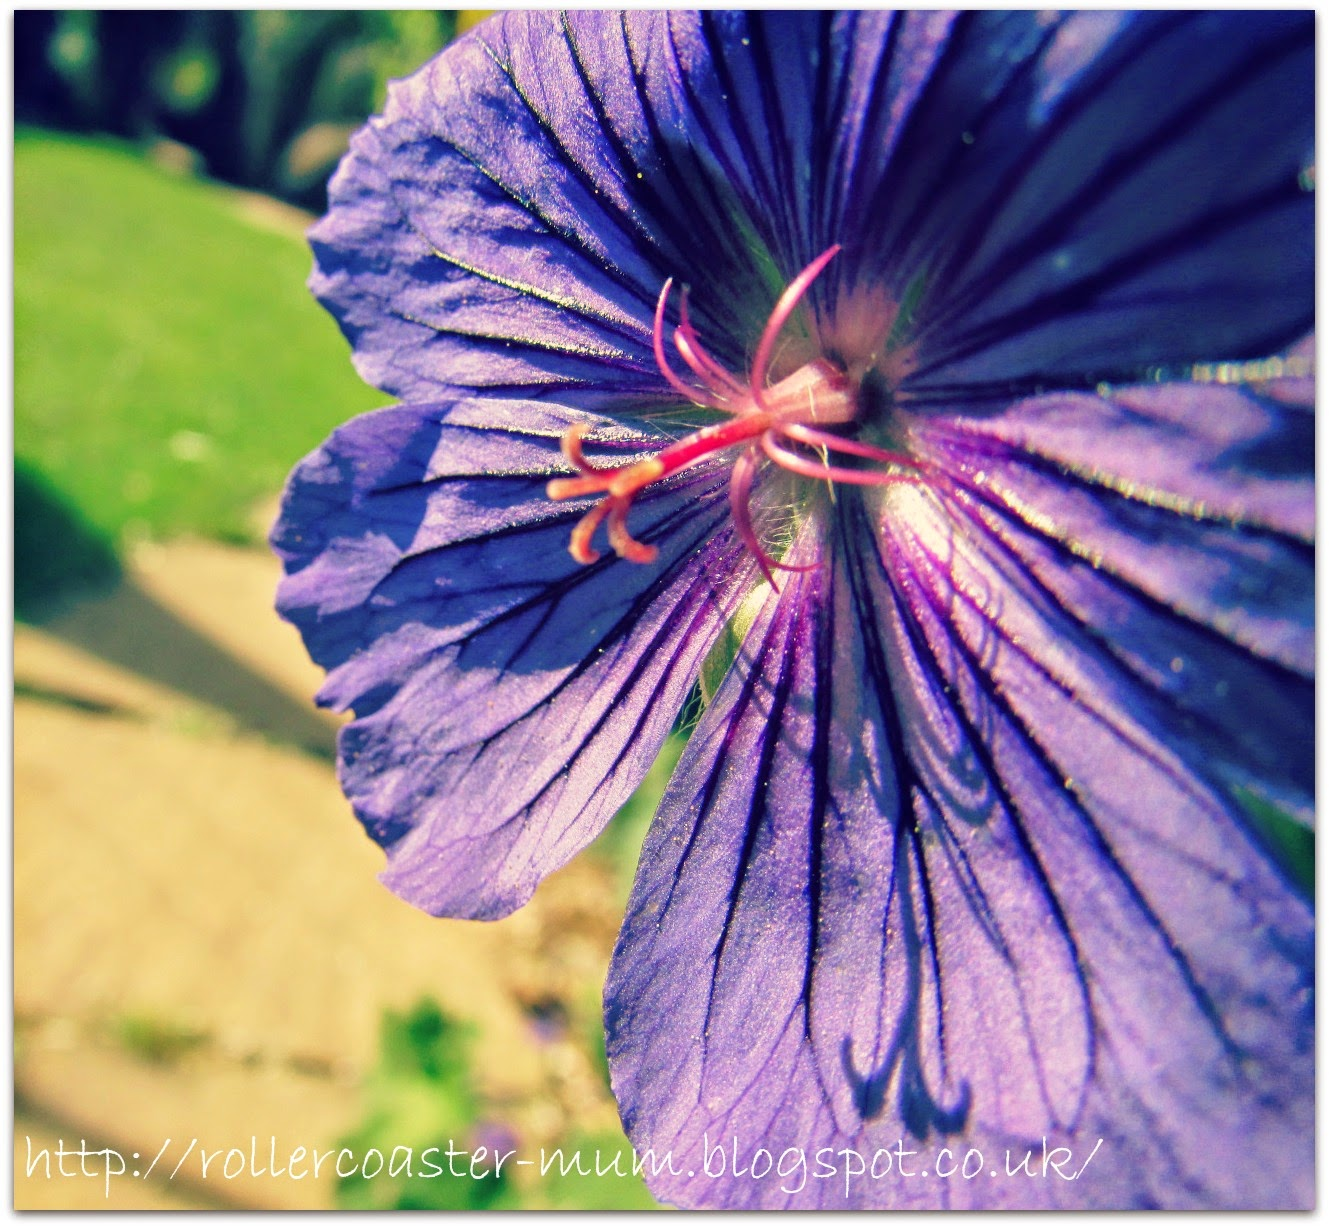 #alphabetphoto, F is for Flower, Geranium flower